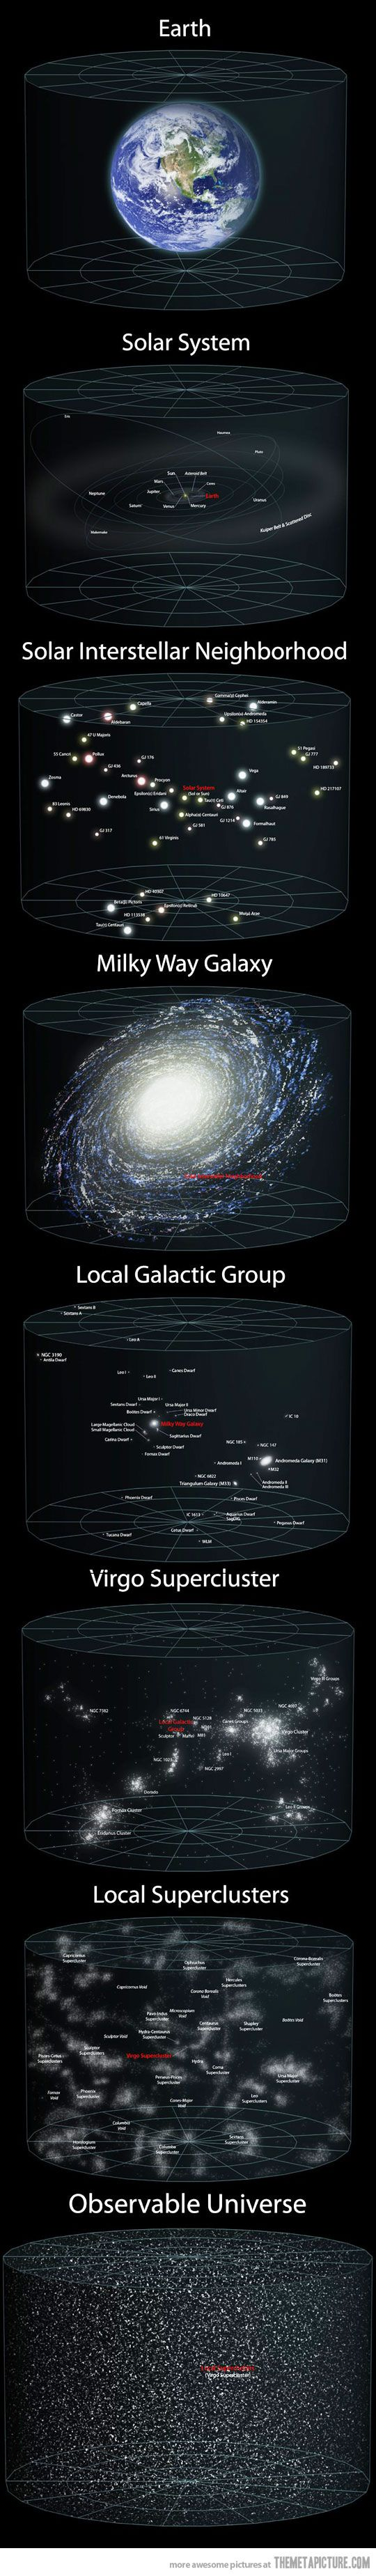 Another image that puts the incomprehensible size of the universe into perspective. All of the places on that picture exist, just as earth does, and you and I do today.